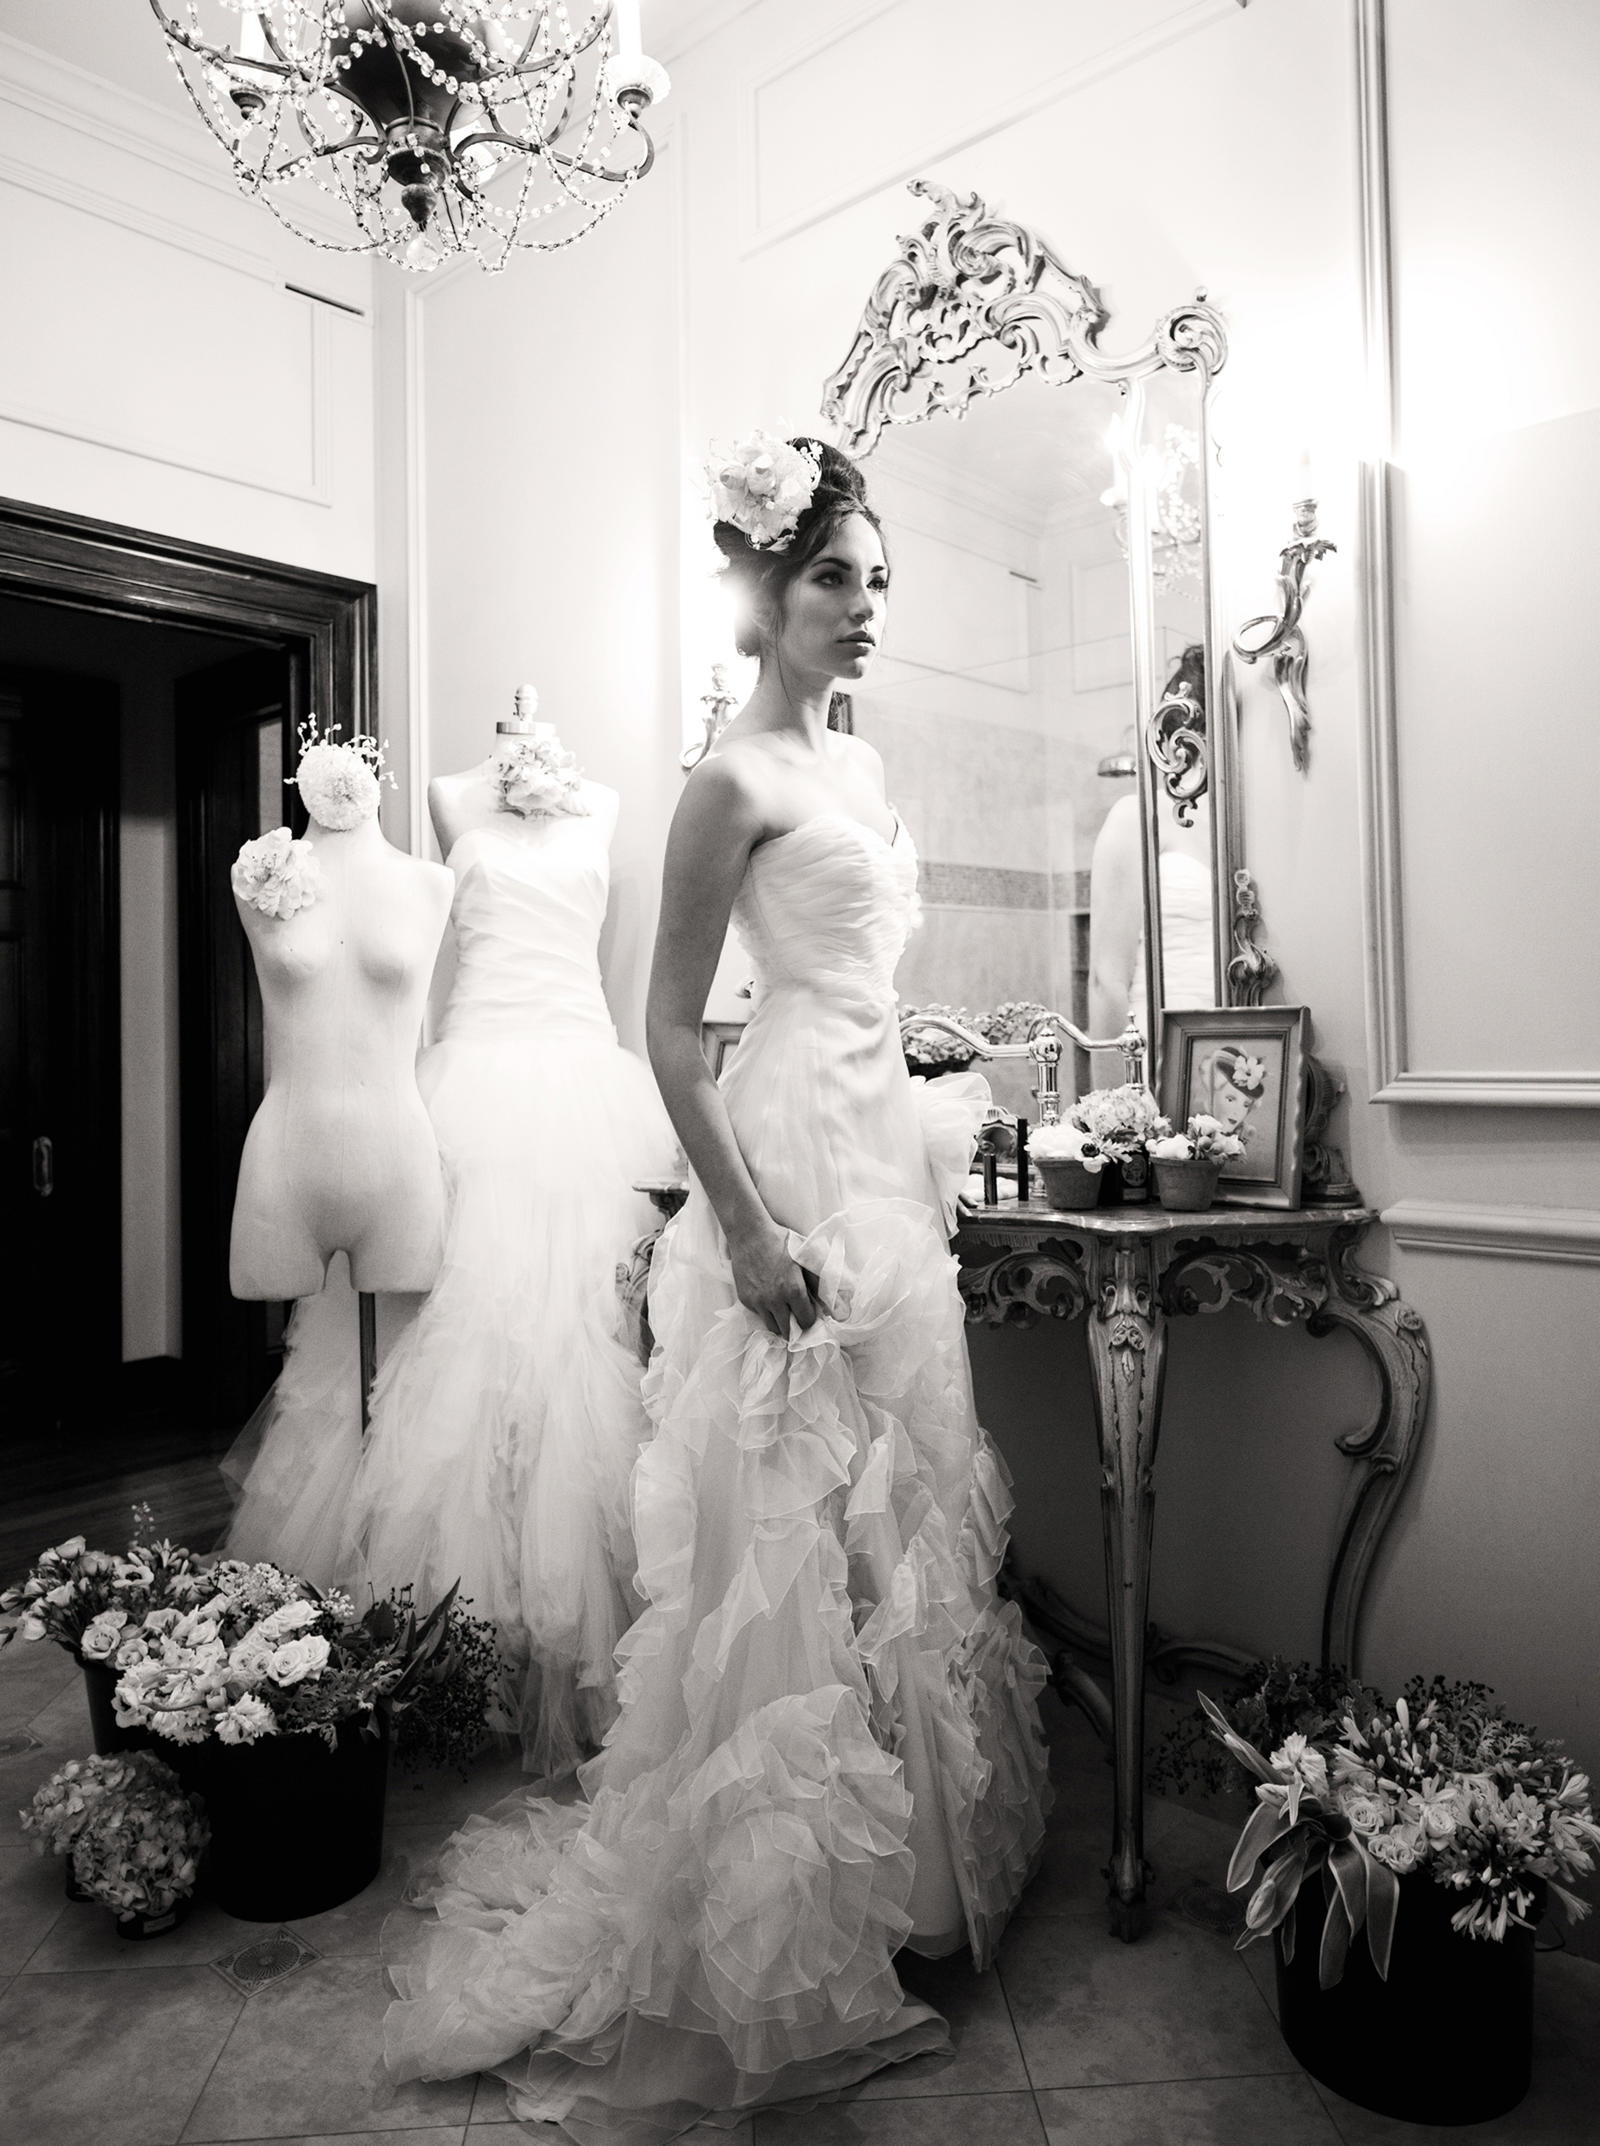 Editorial Photography | Atlanta, GA | A model in an elegant wedding dress stands in front of a vanity.